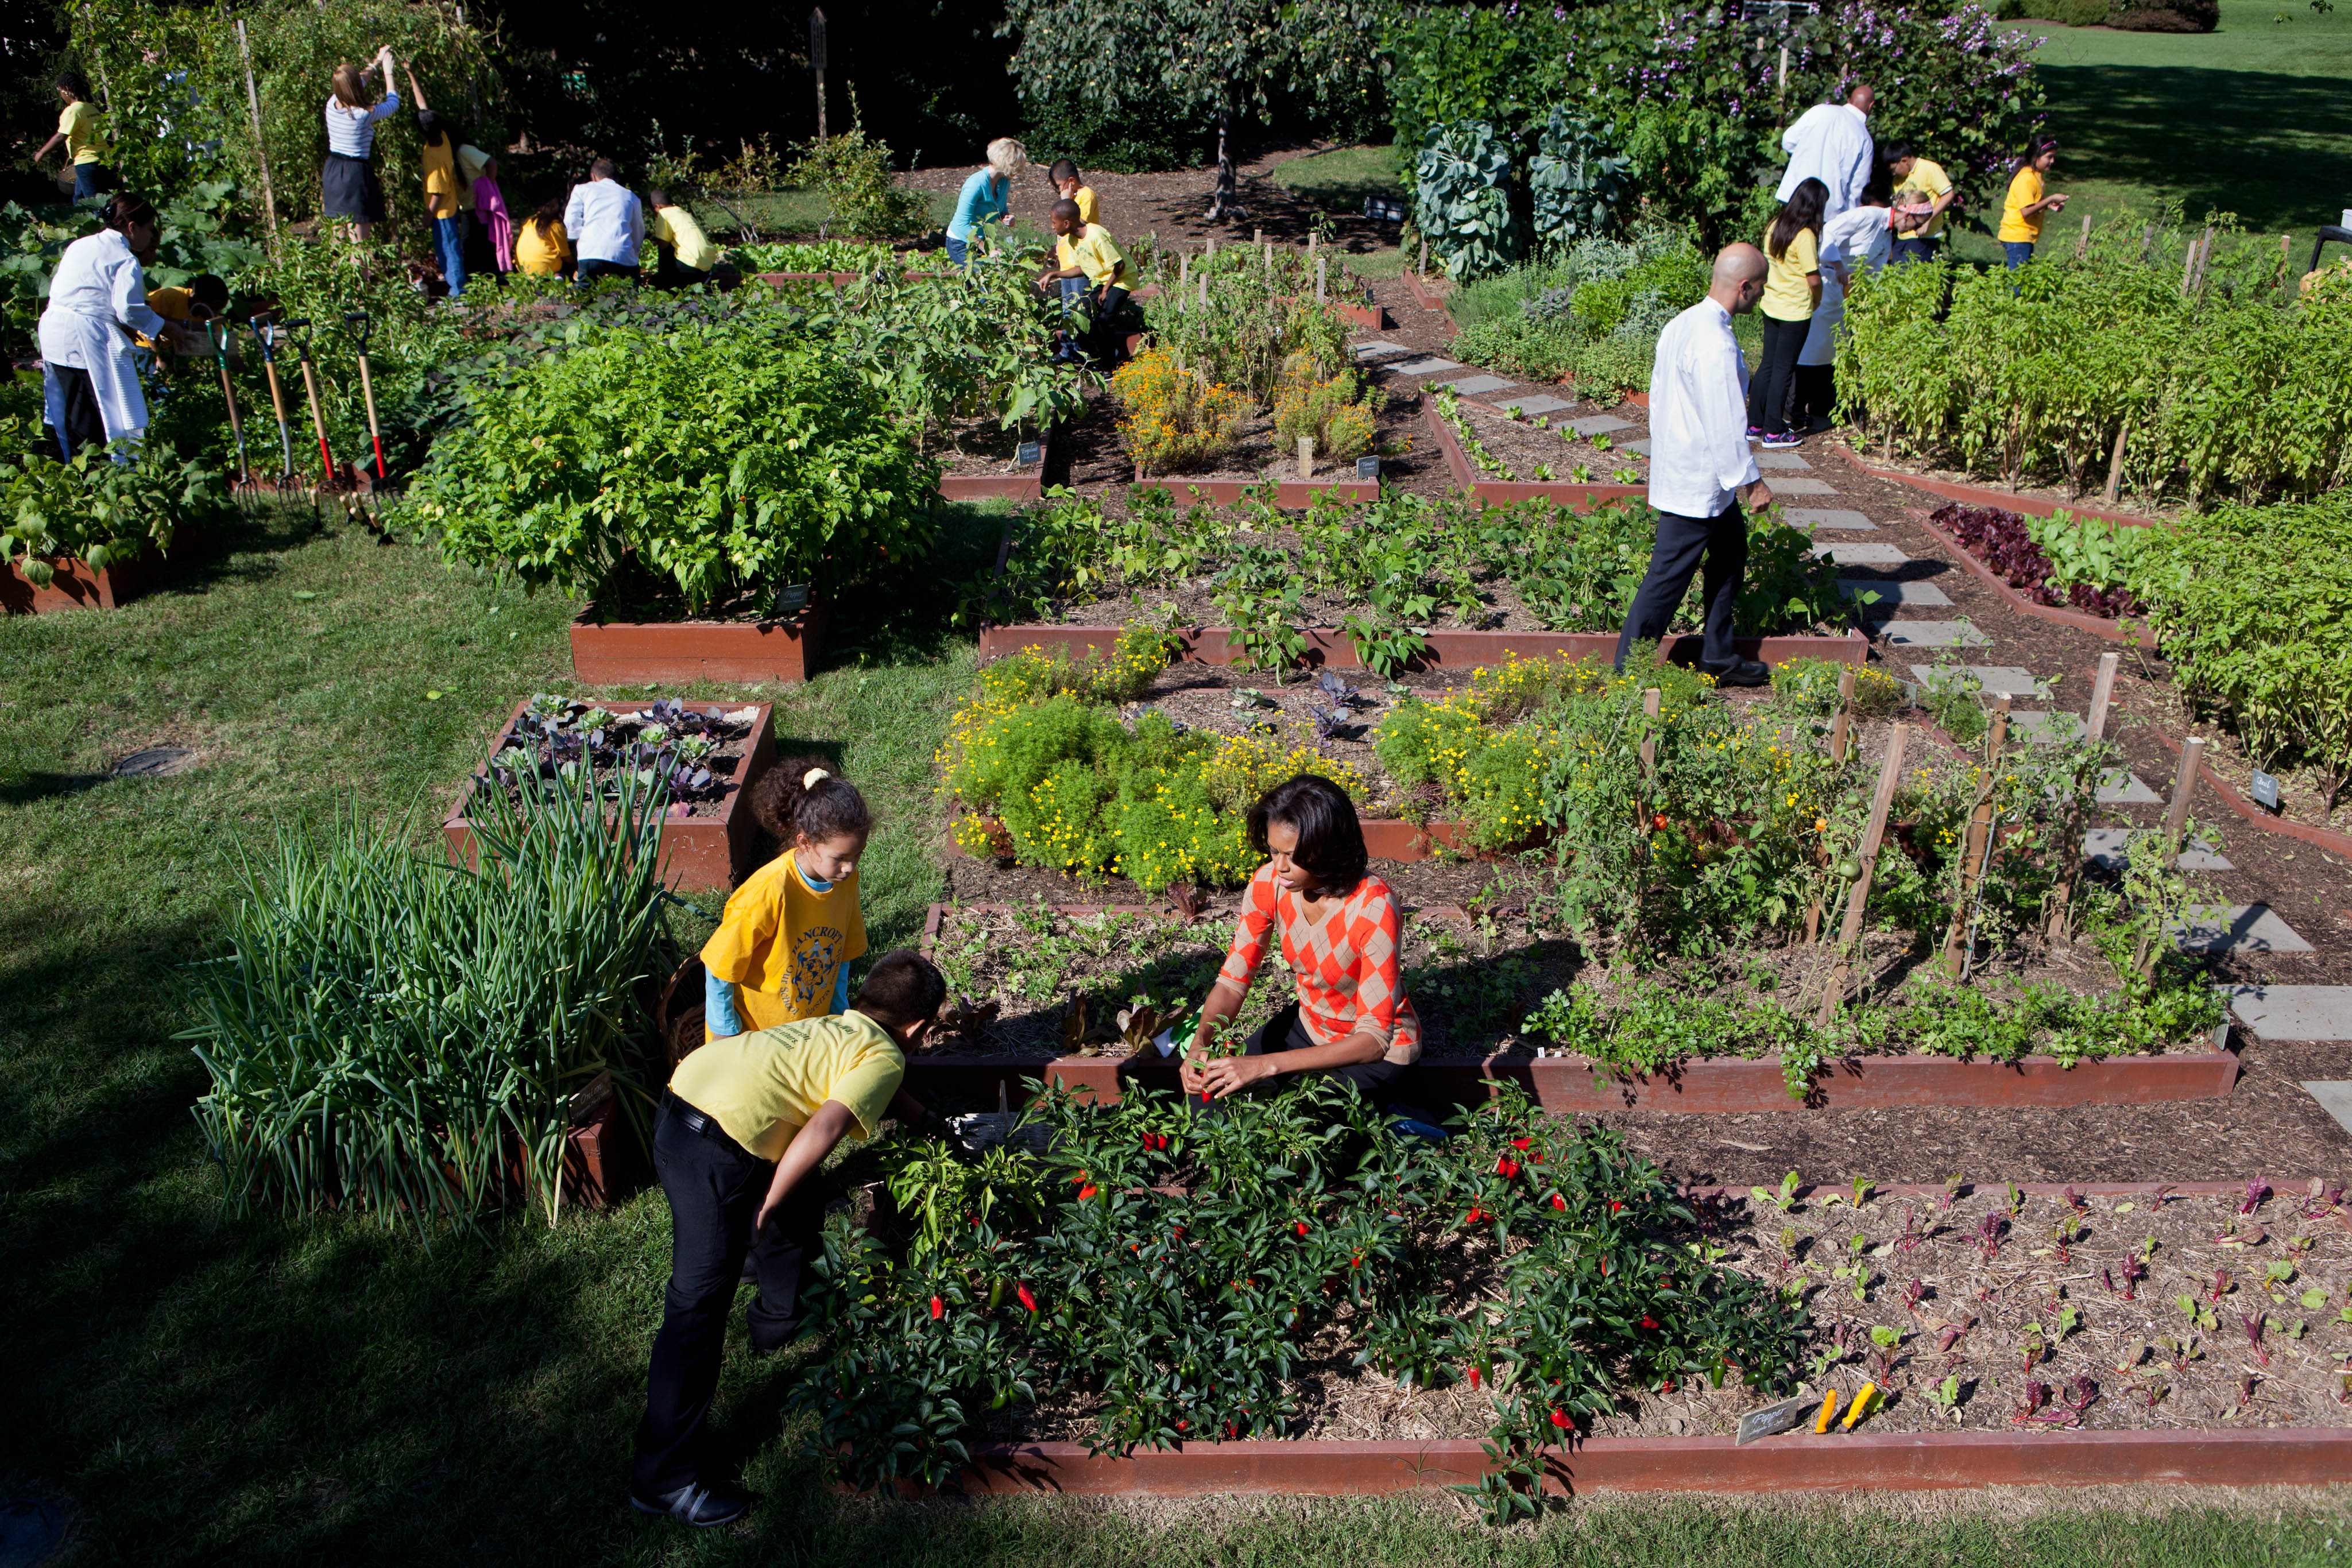 File:Michelle Obama and White House chefs join children to harvest ...